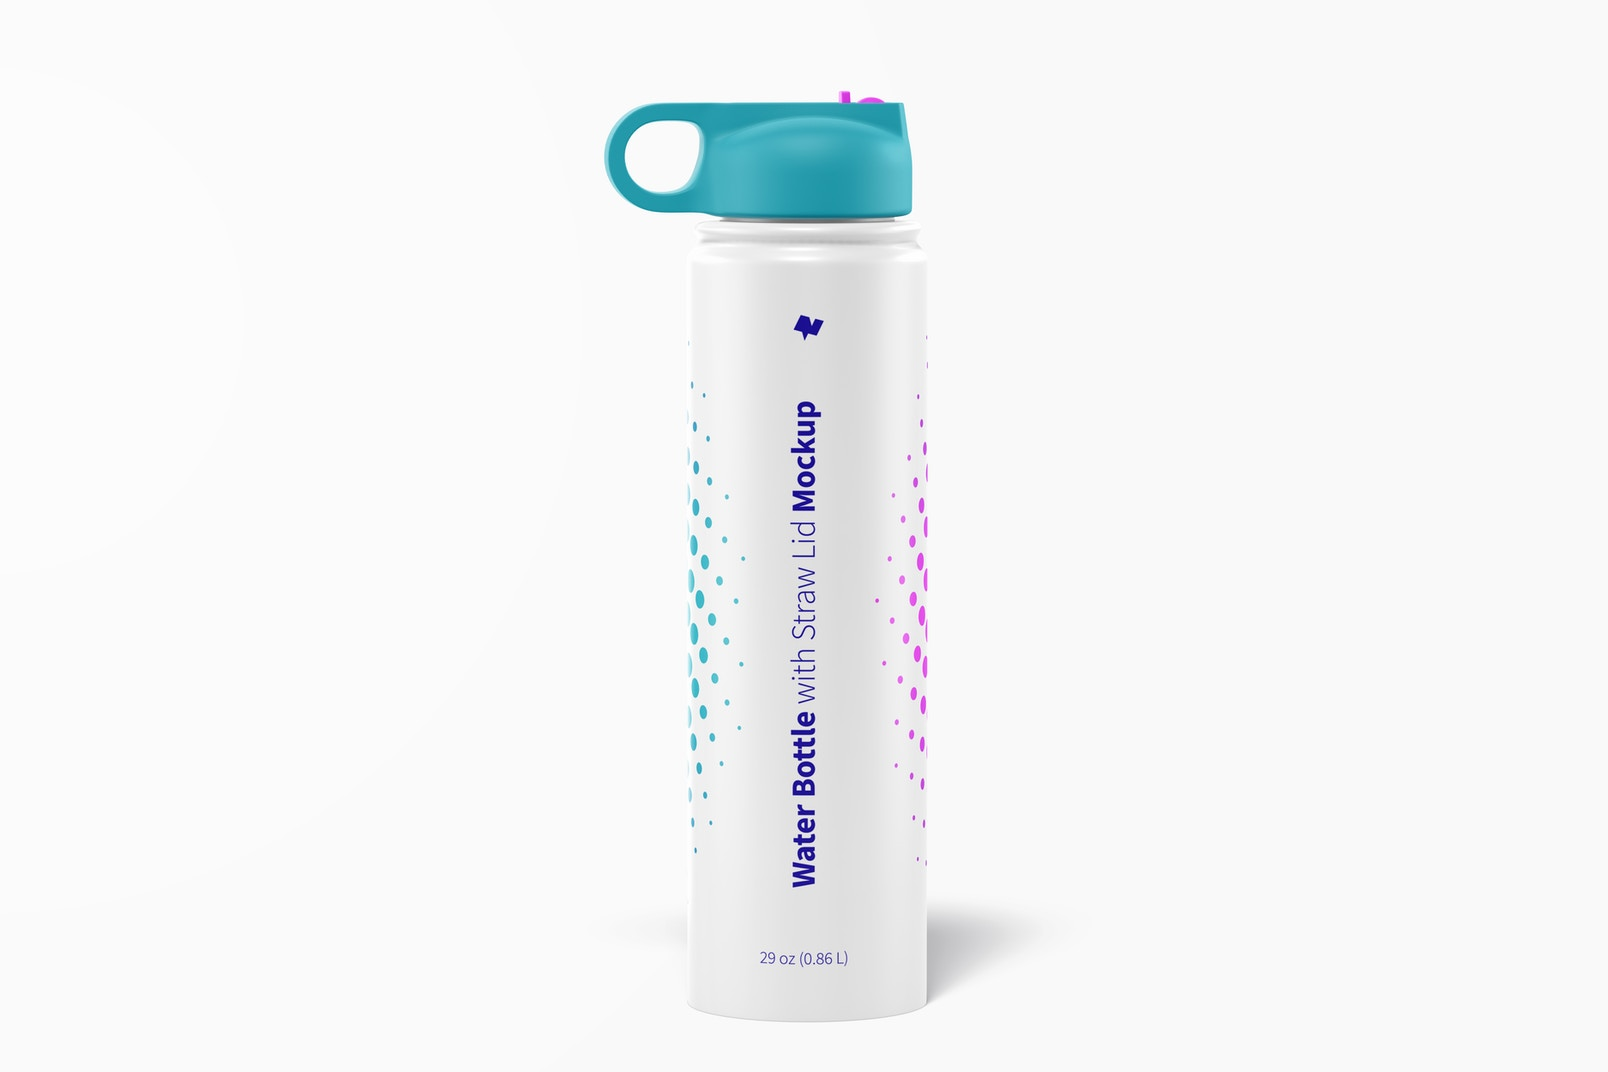 Water Bottle with Straw Lid Mockup